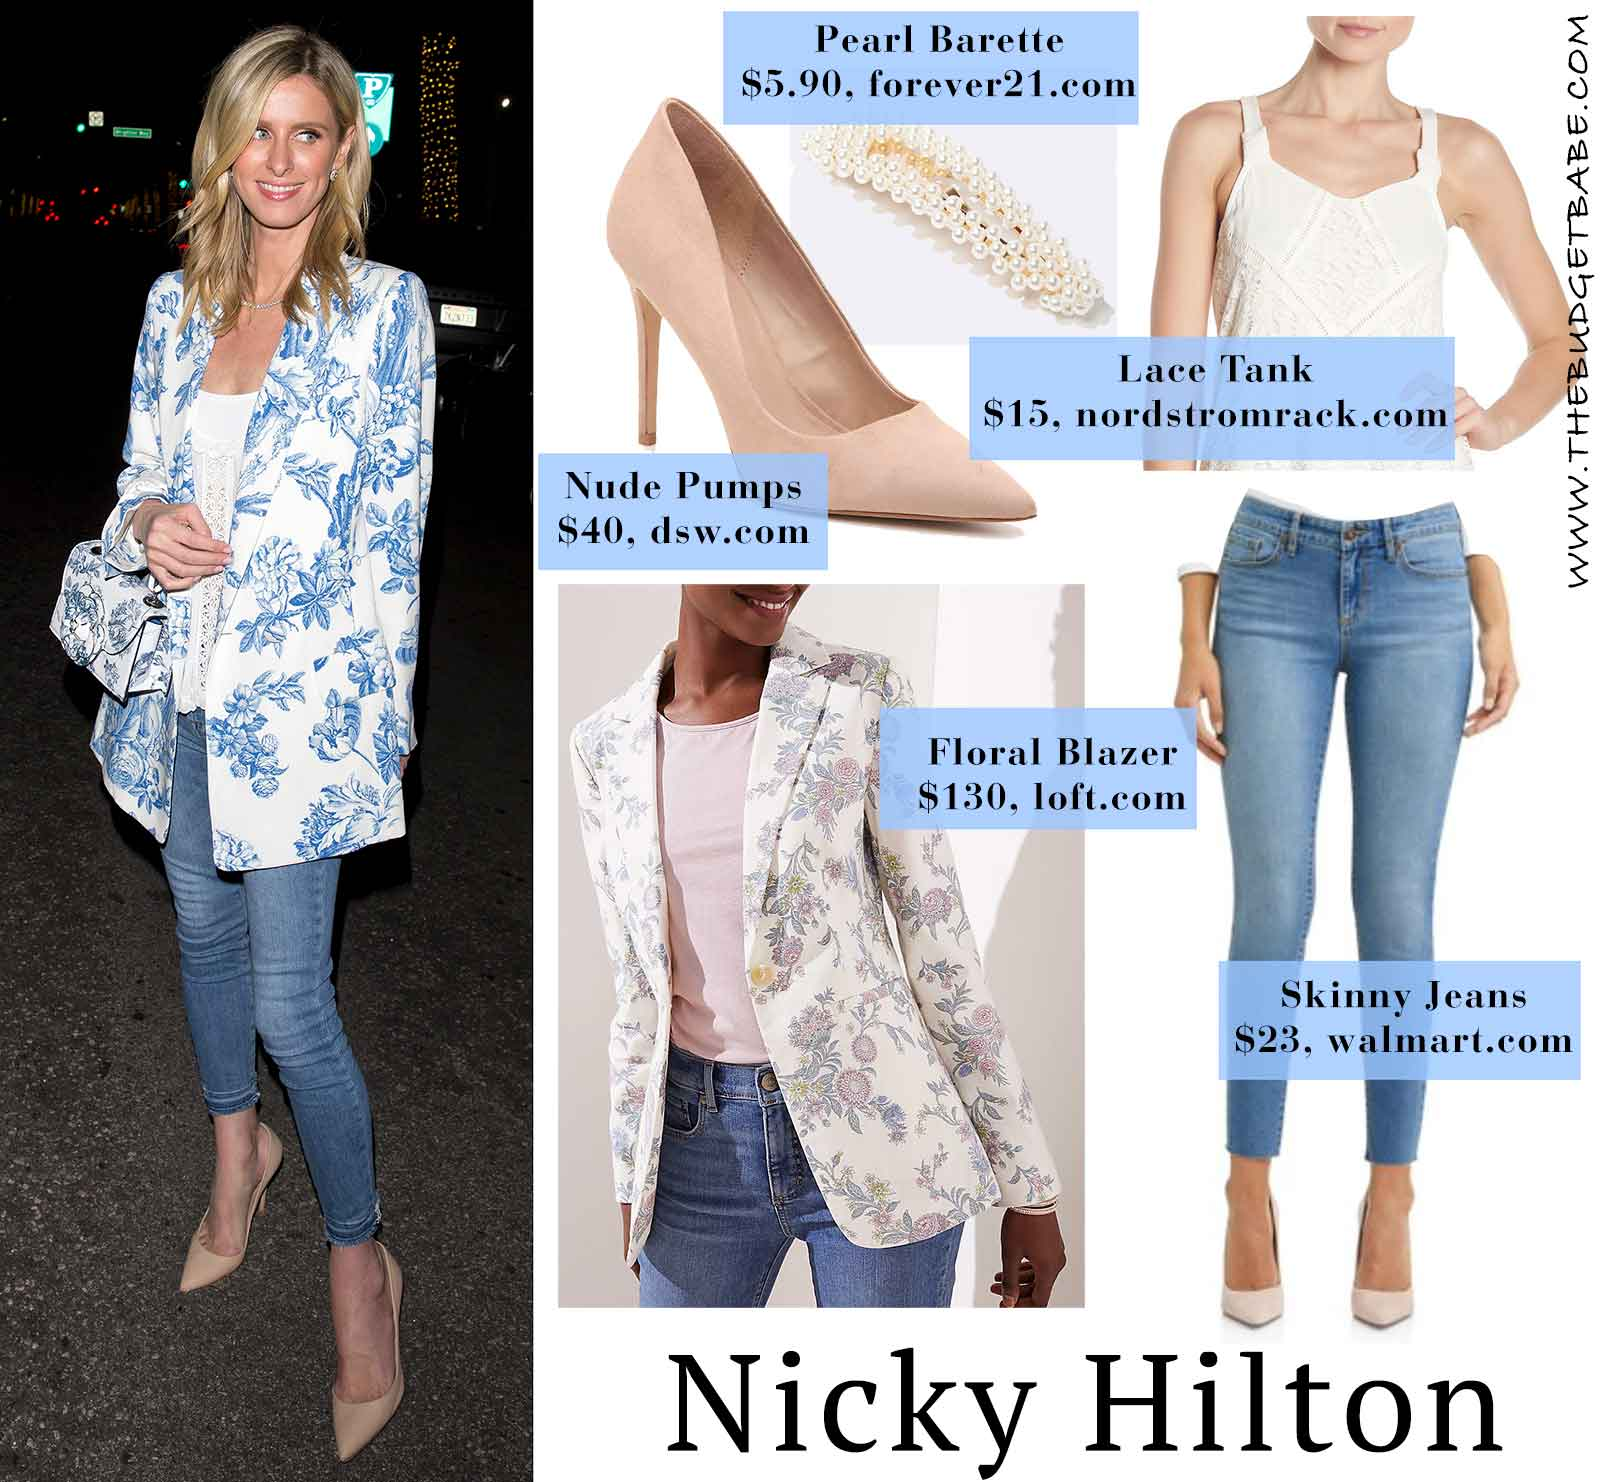 Nicky Hilton's floral blazer and nude pumps look for less